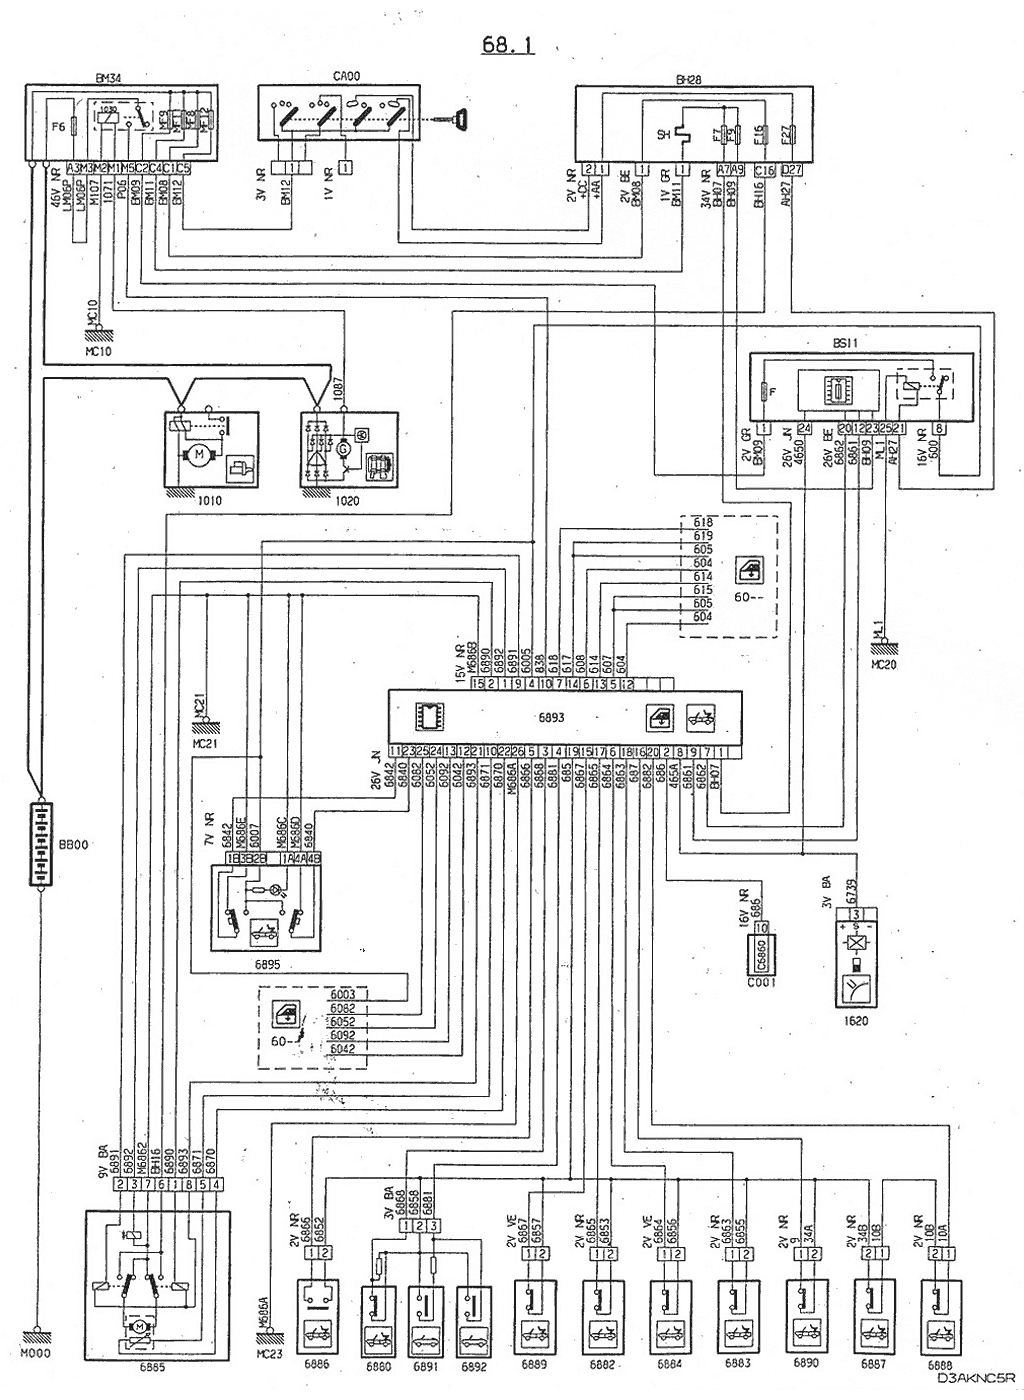 Peugeot Xps 50 Wiring Diagram - Wiring Diagram Sm-T350 To Usb Hstdwire